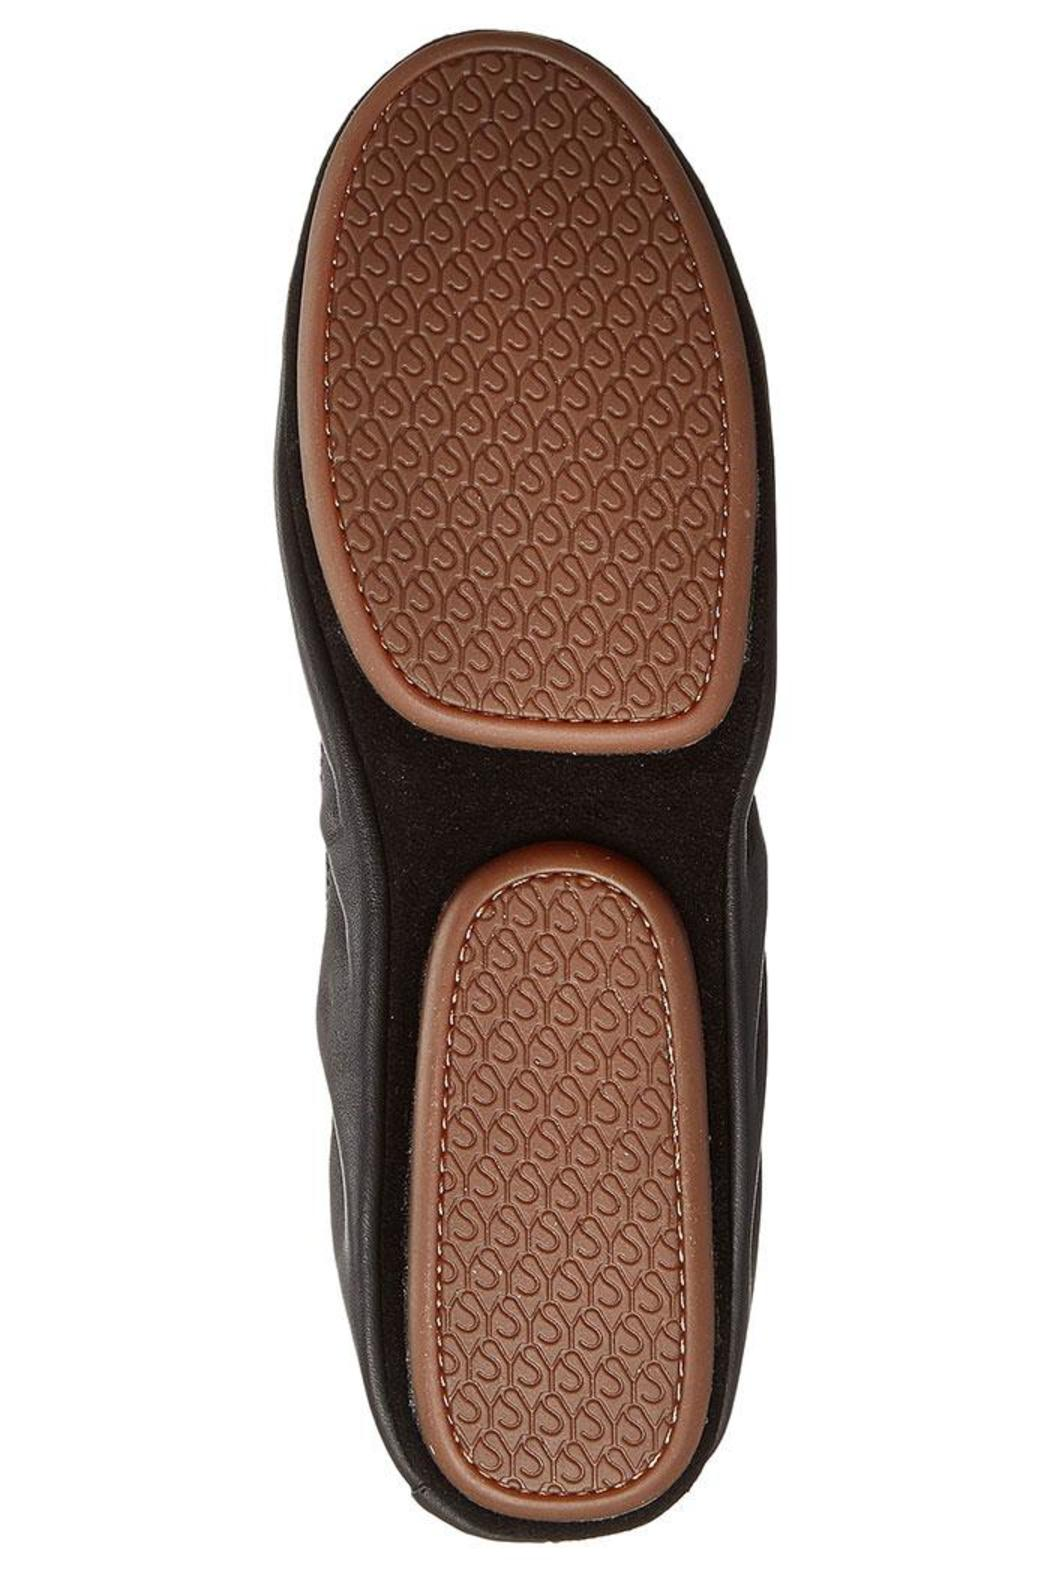 Yosi Samra Two-Tone Foldable Flats - Back Cropped Image